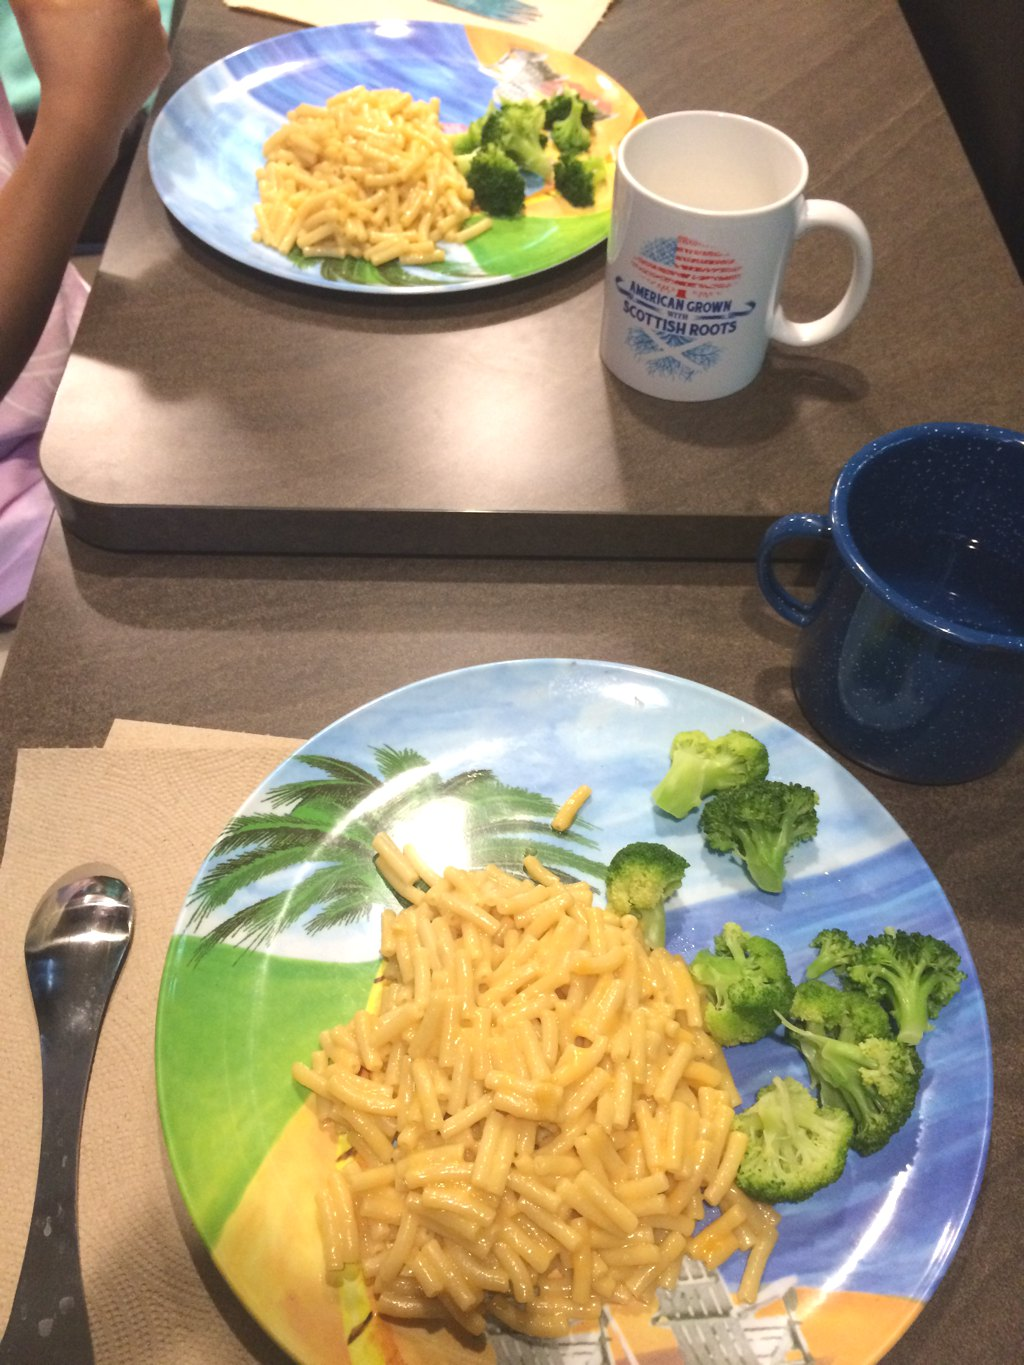 Mac and cheese and broccoli meal.